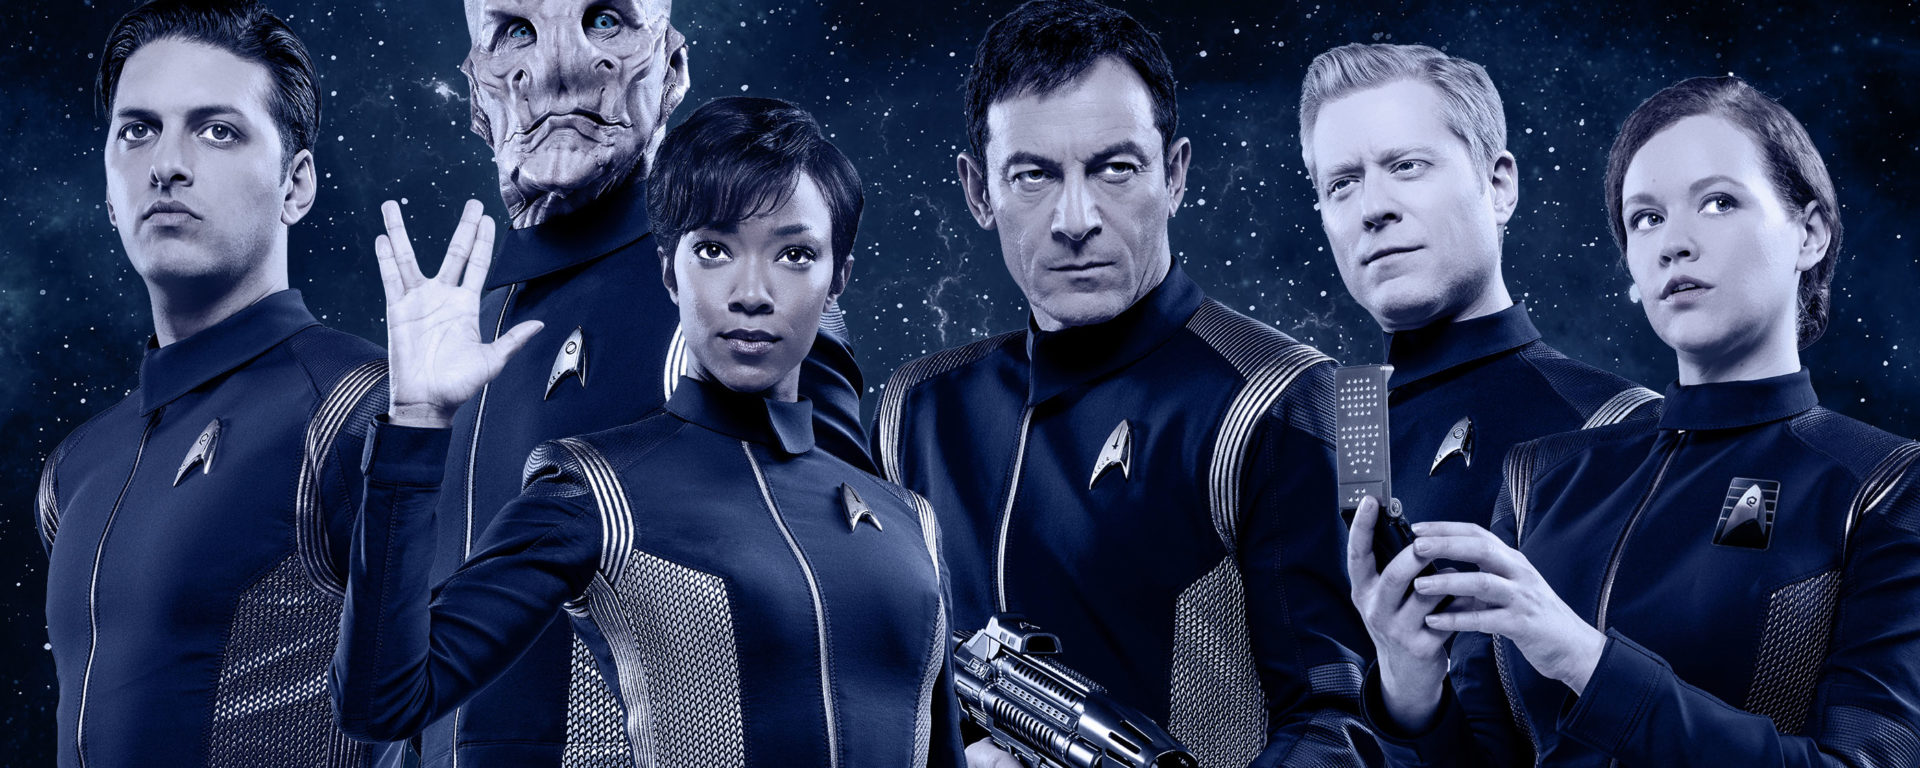 star trek discovery cultural hater